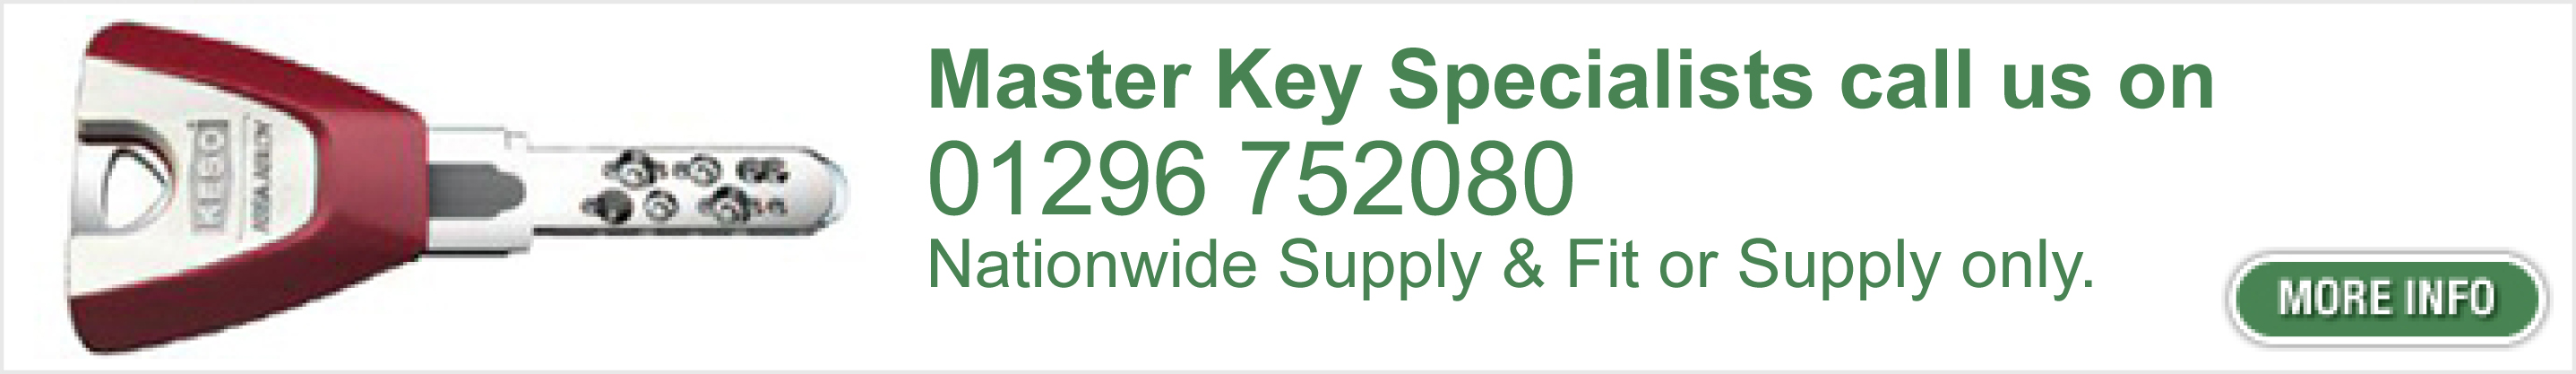 Master Key Specialists call us on 01296 152080, Nationwide Supply & Fit or Supply only